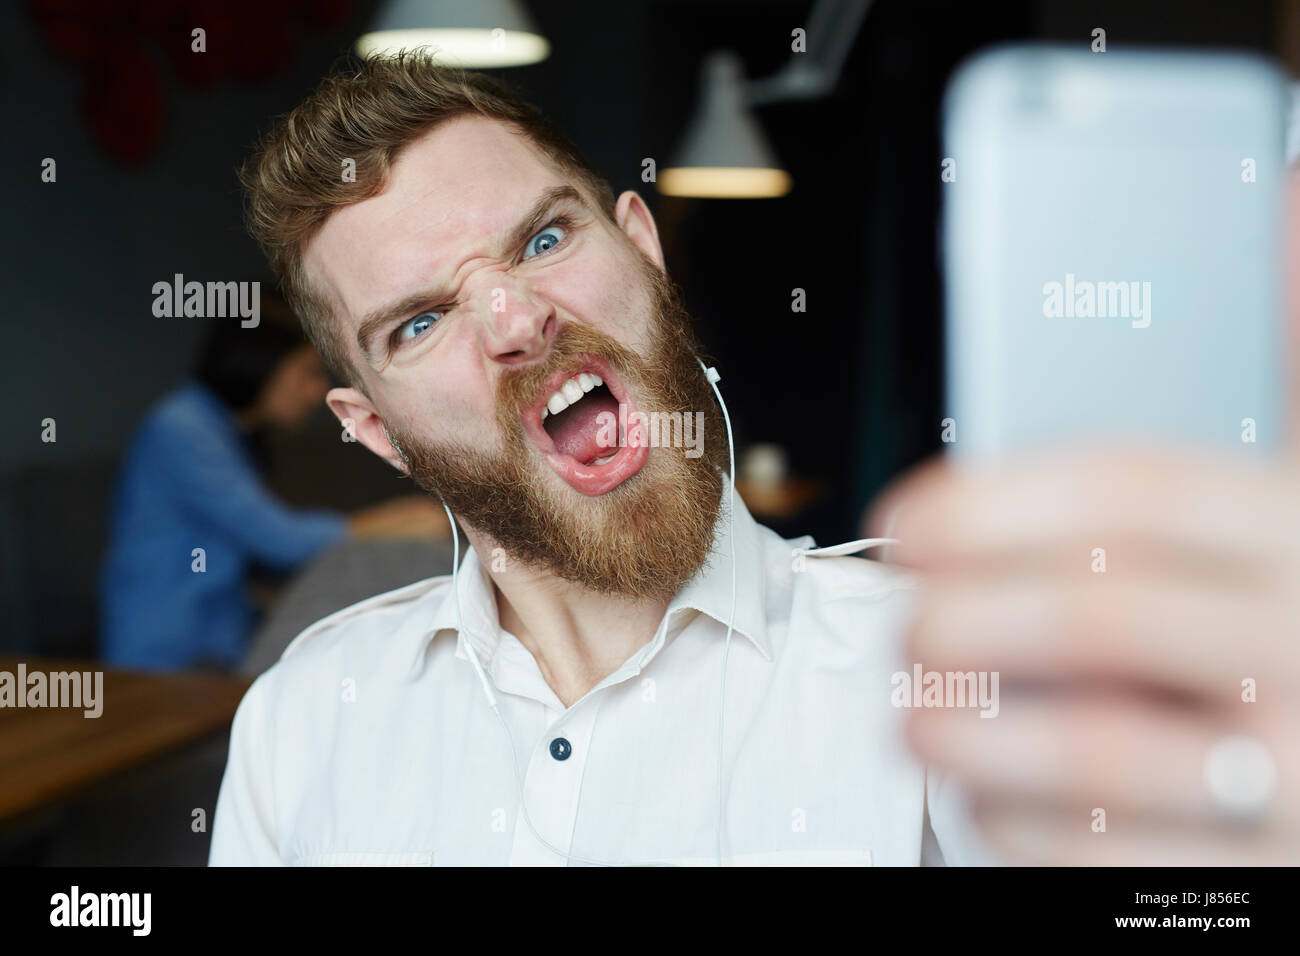 Portrait of modern bearded man yelling and grimacing angrily to camera posing for selfie photo - Stock Image